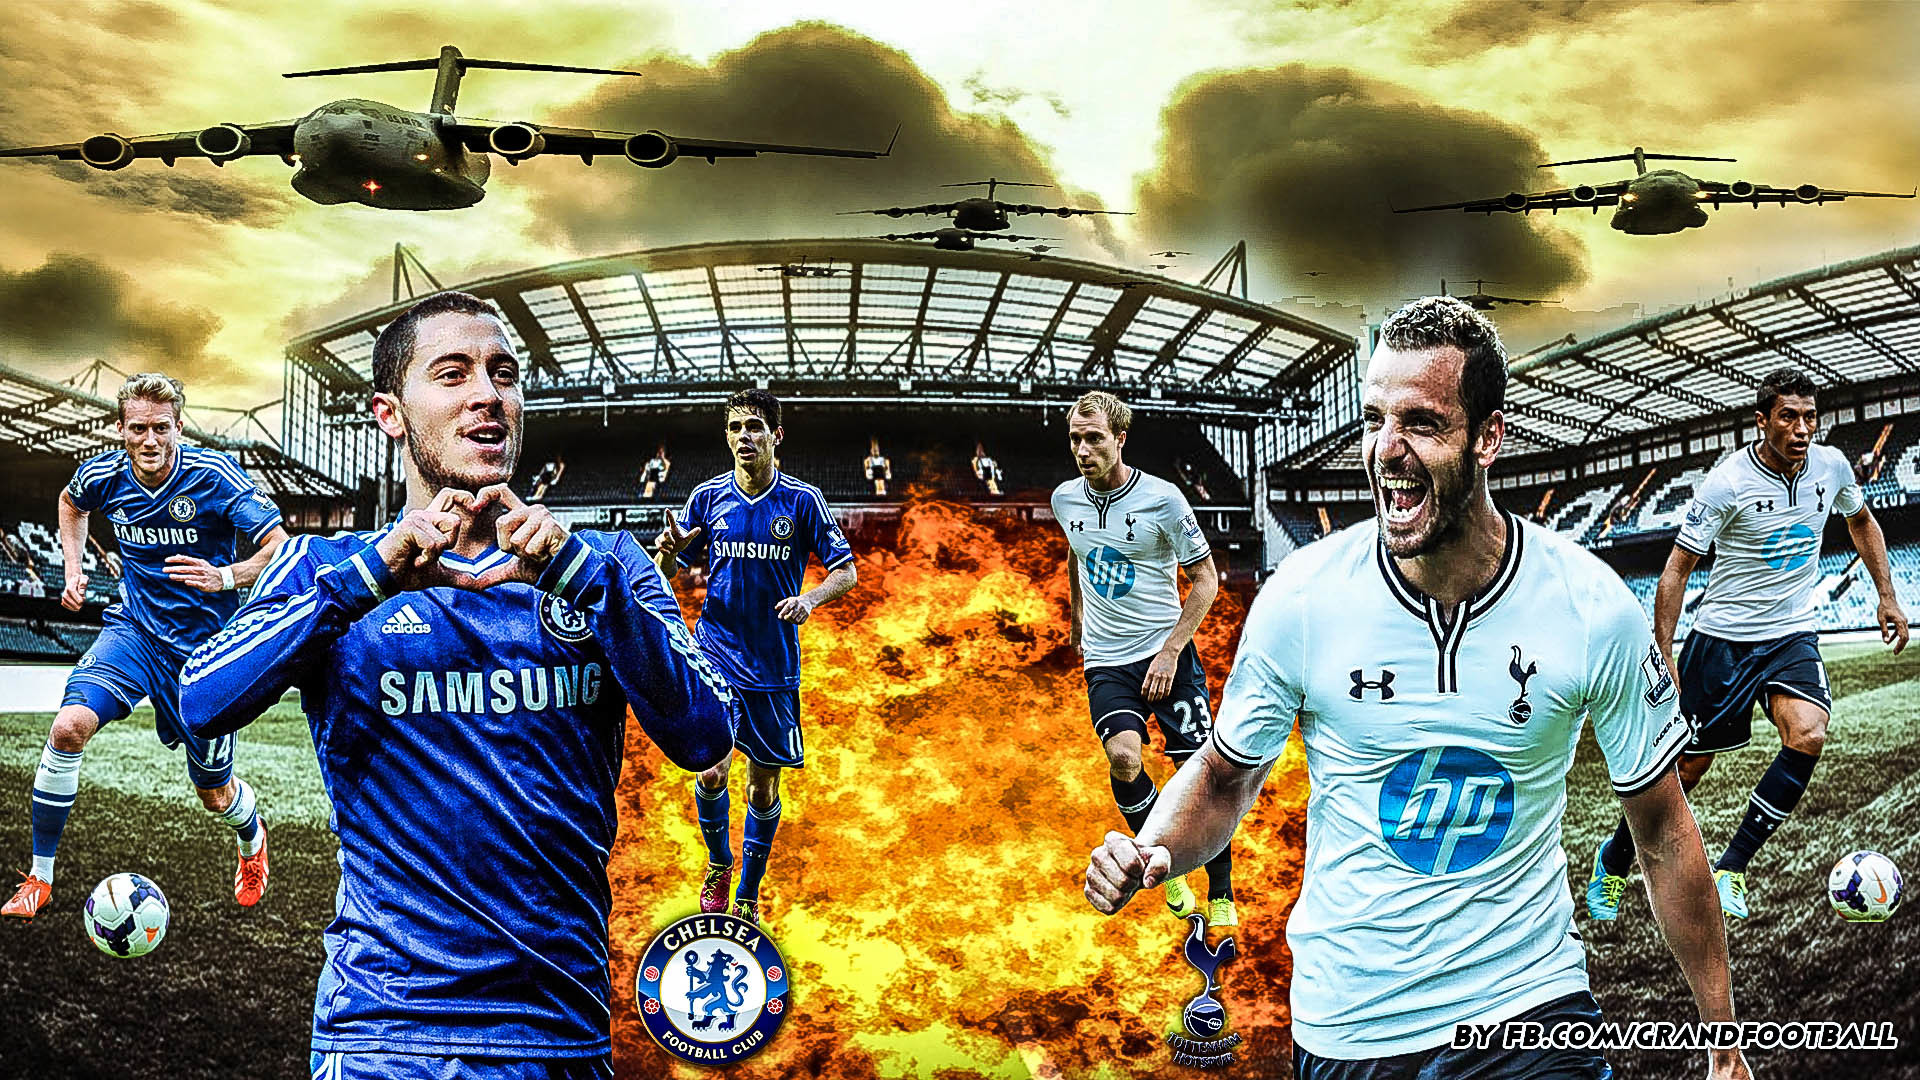 New wallpaper of Cheslea FC Vs Tottenham Hotspur by Yassine page facebook  here https:/